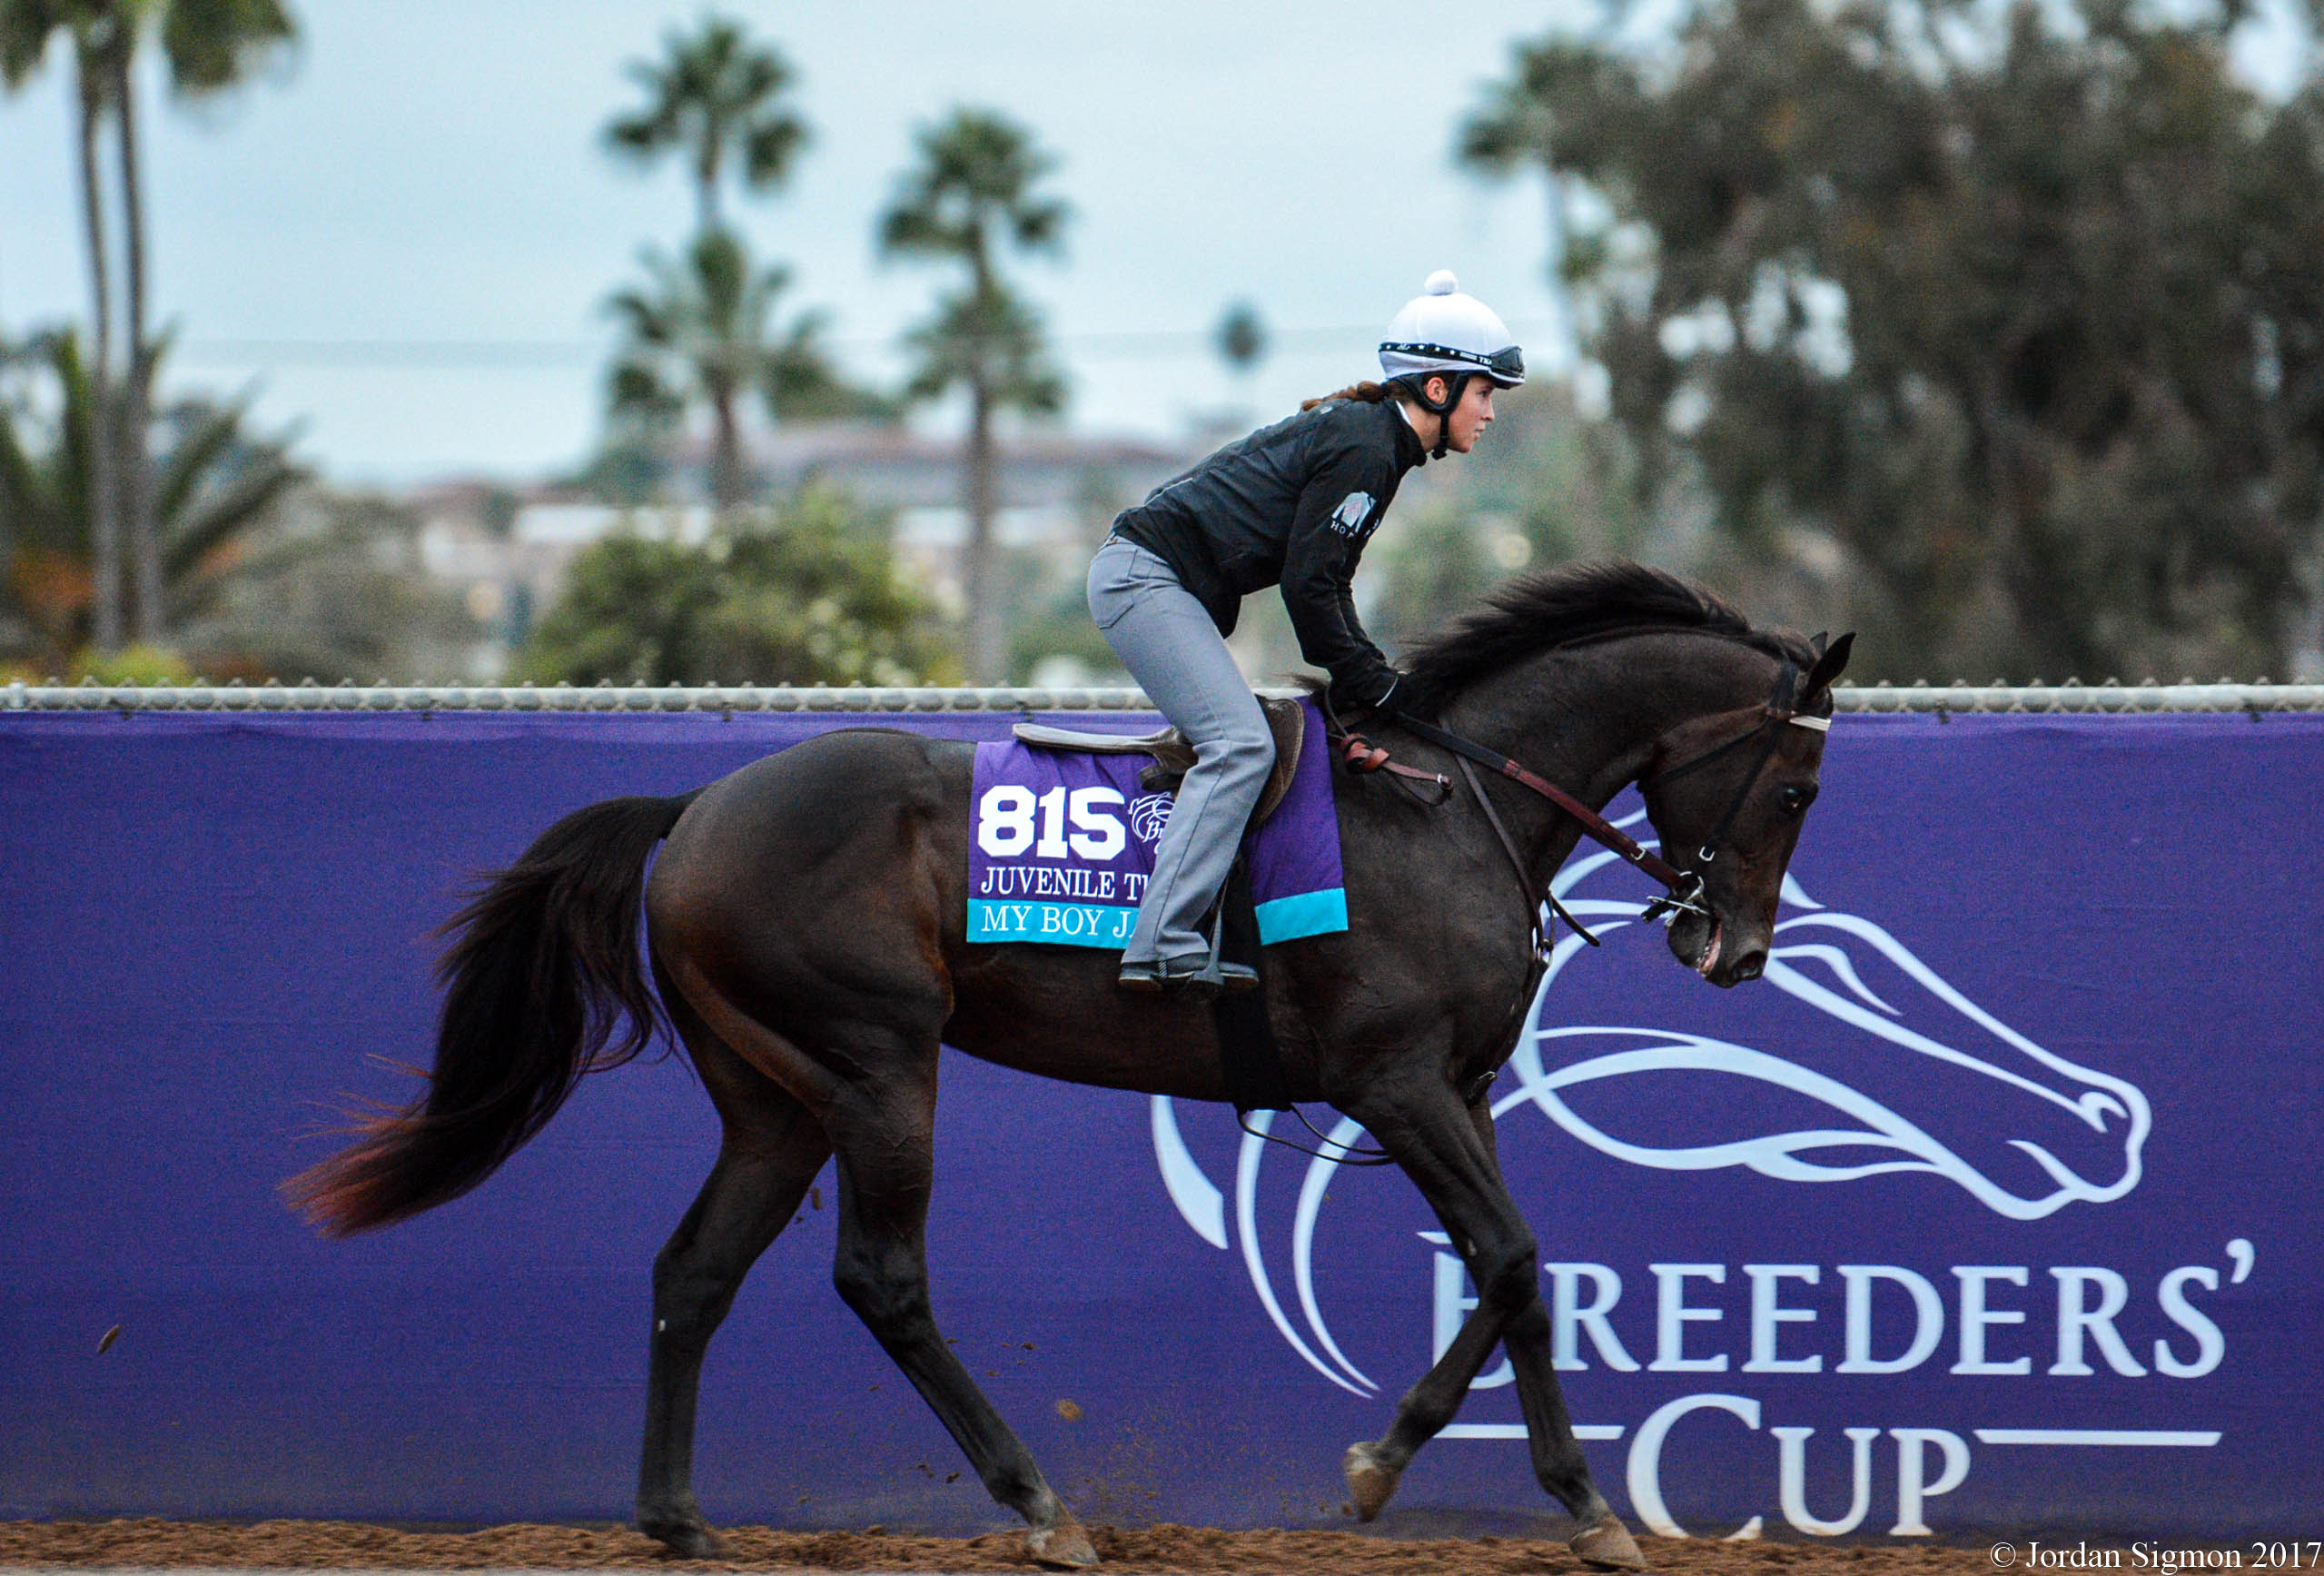 Breeders Cup Morning Training Photos 11 1 17 Lady And